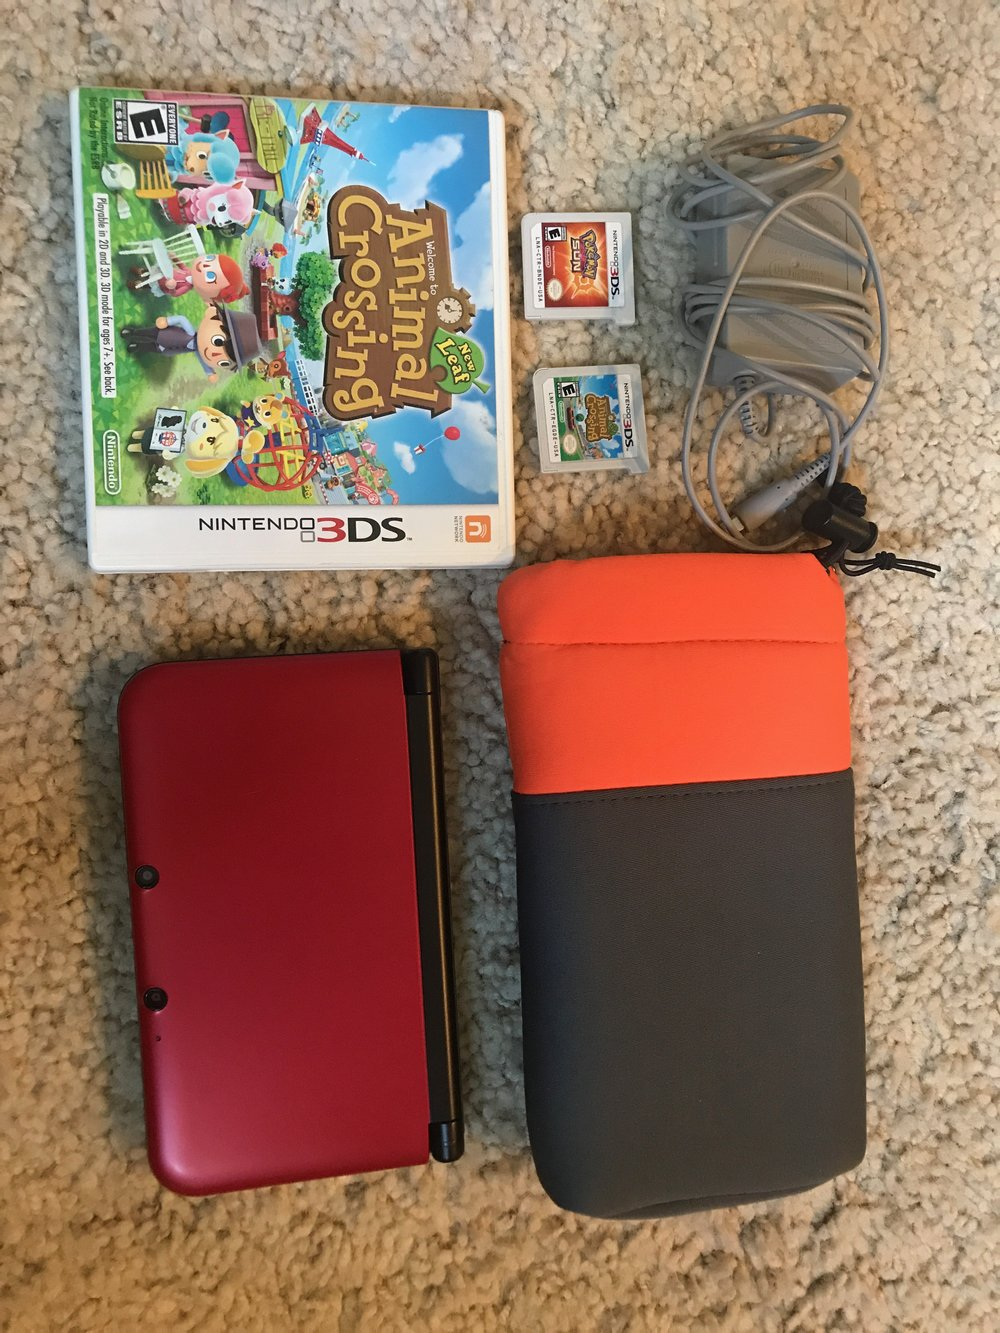 $120 LIKE NEW Nintendo 3DS XL Red with protective case and 2 games (animal crossing new leaf and Pokemon Sun) - RETAIL: $200